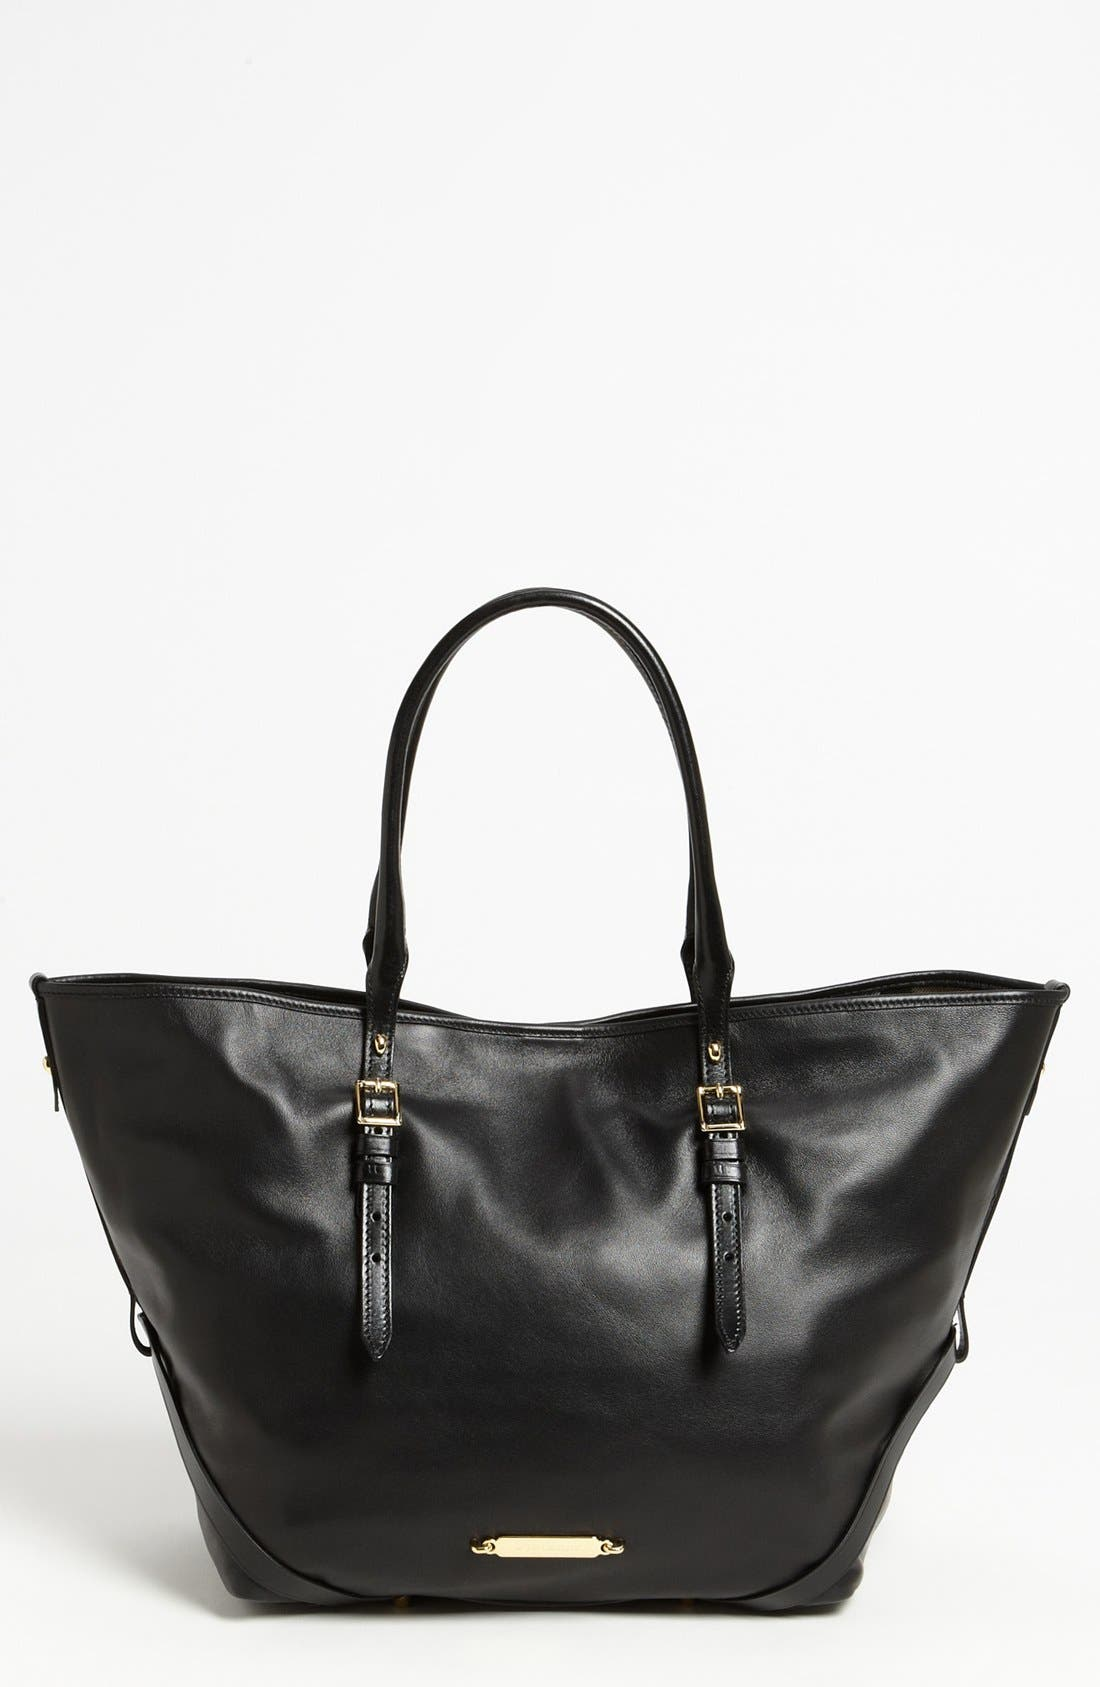 Alternate Image 1 Selected - Burberry 'Medium Bridle' Leather Tote